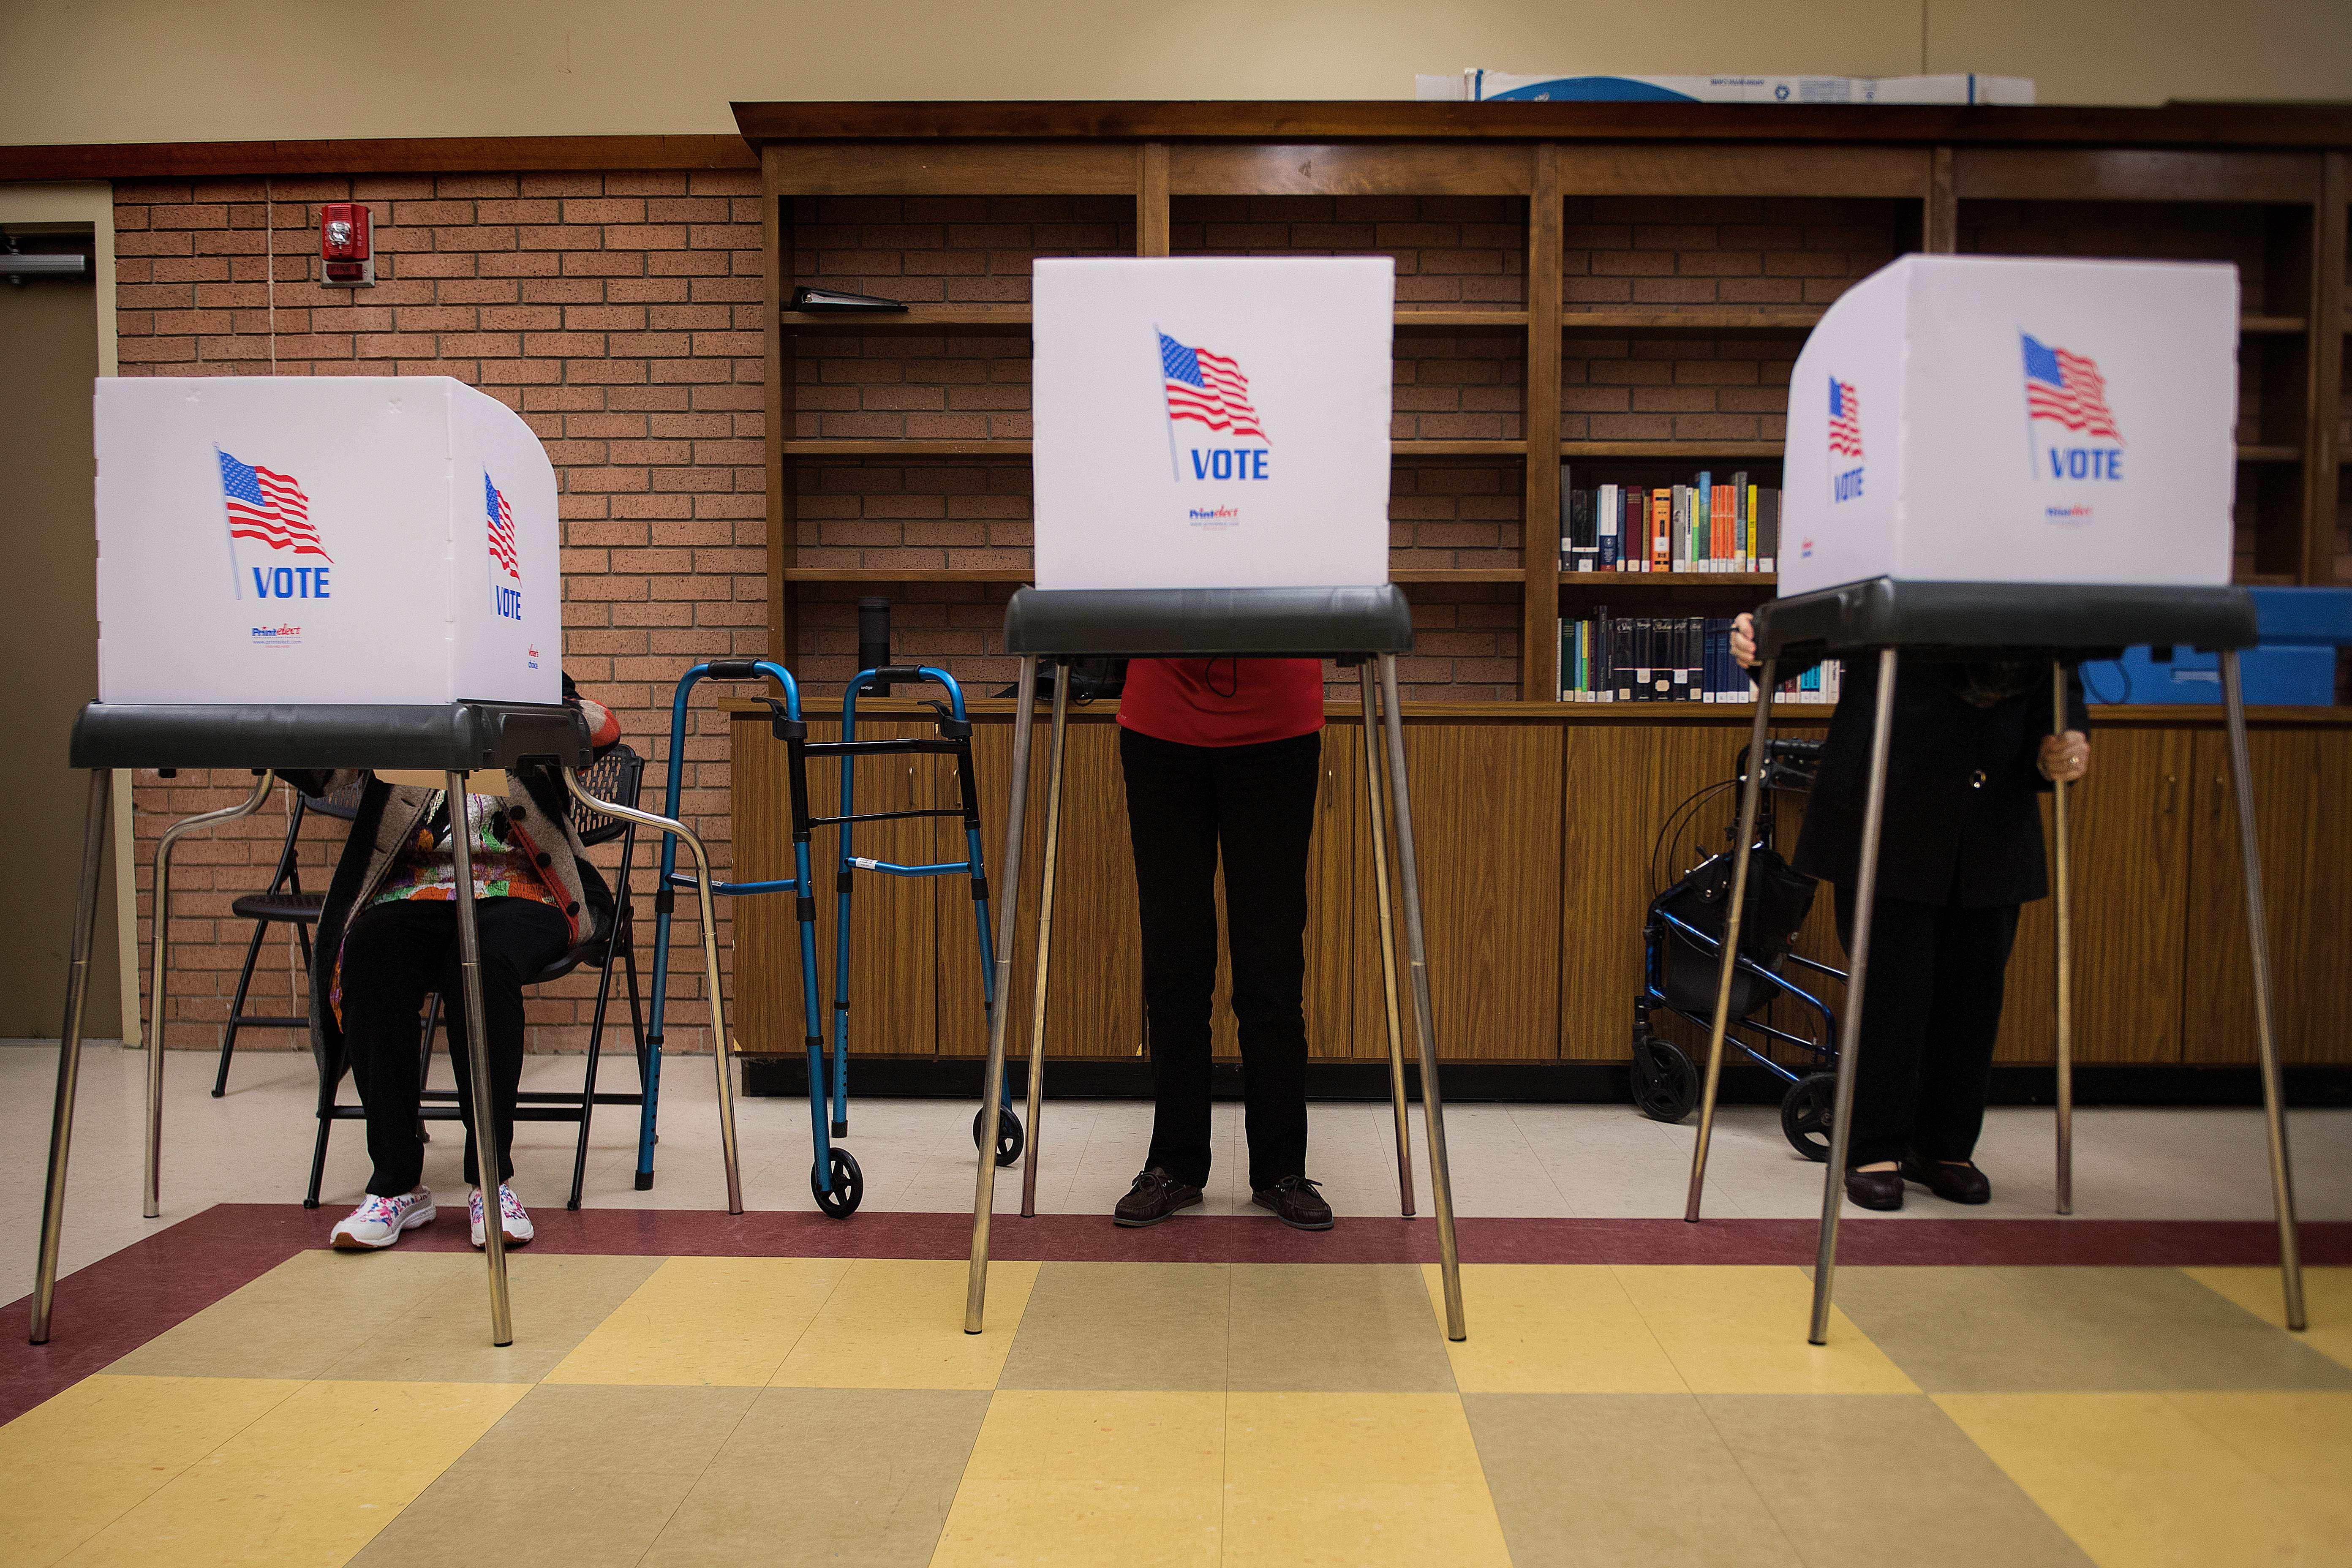 Voters in Chestertown, Maryland, cast ballots in Maryland's early voting on Oct. 25.